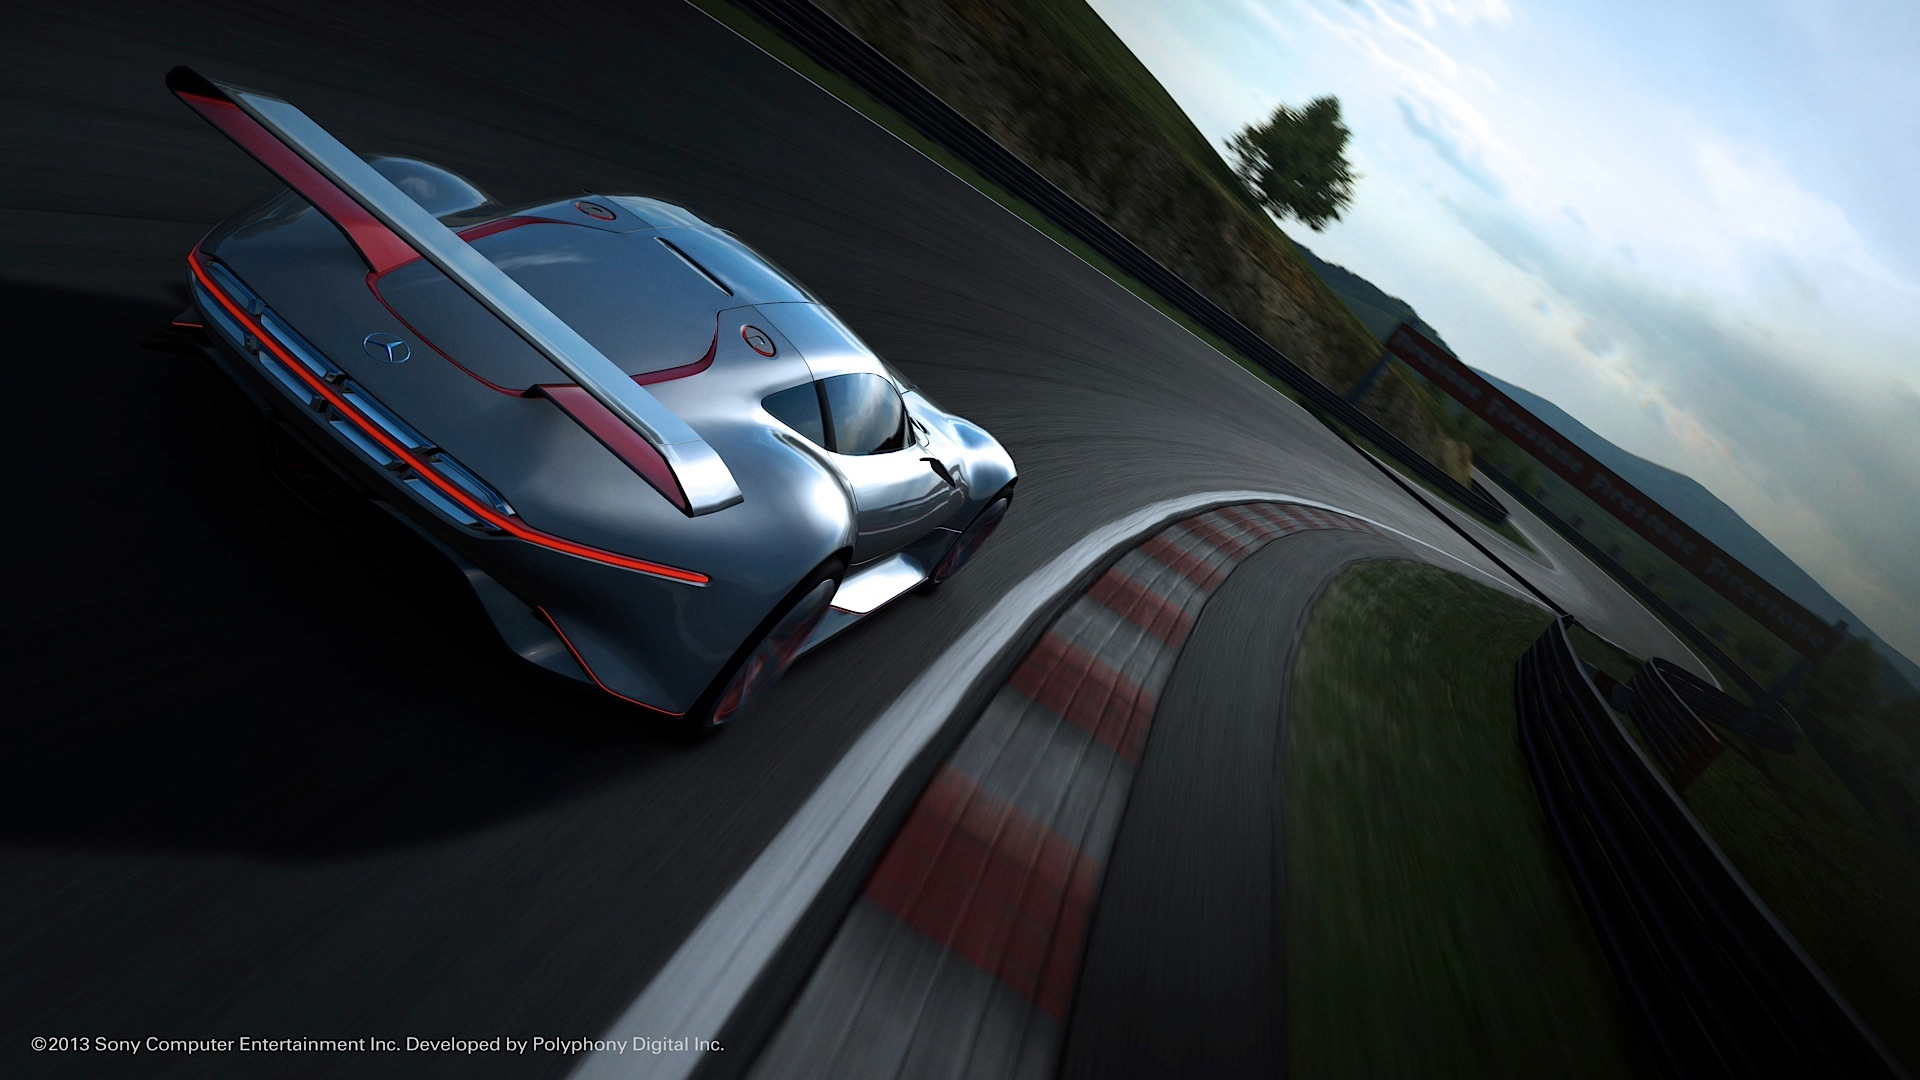 2013 - [Mercedes-Benz] AMG Vision Gran Turismo - Page 2 It-sure-is-tight-in-the-amg-vision-gran-turismo-photo-gallery-1080p-11